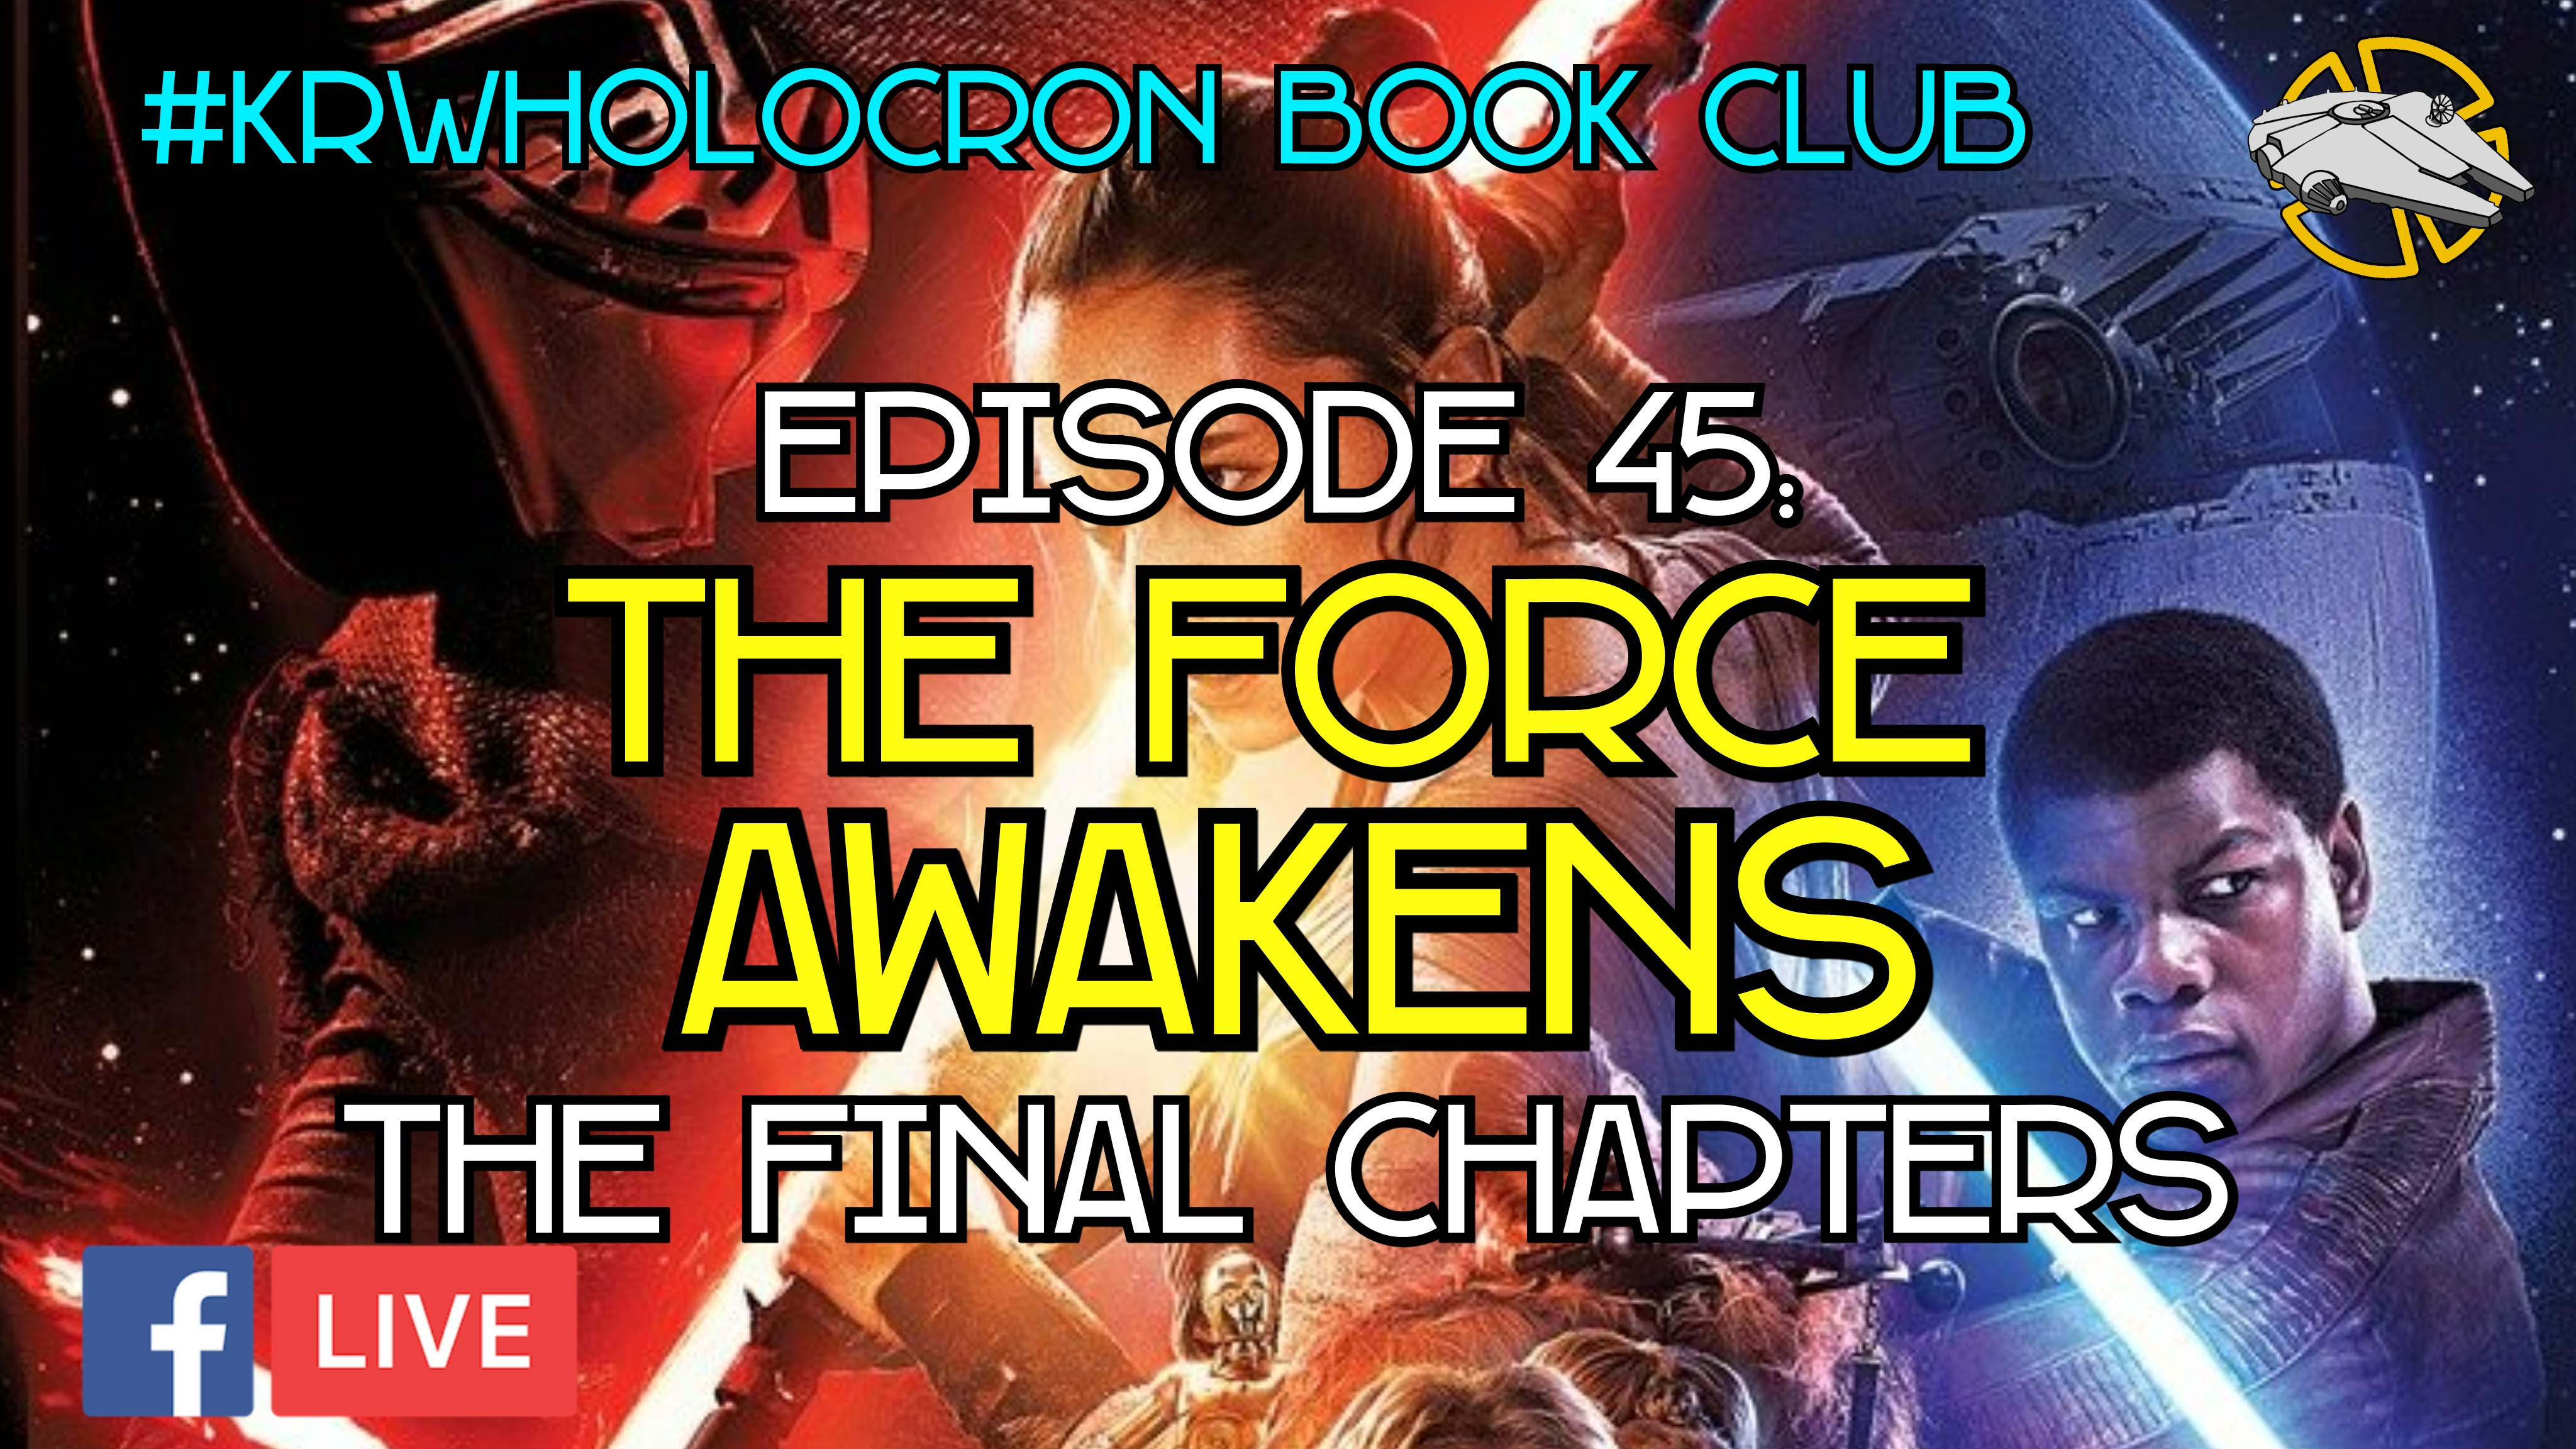 Episode 45: The Force Awakens – The Final Chapters